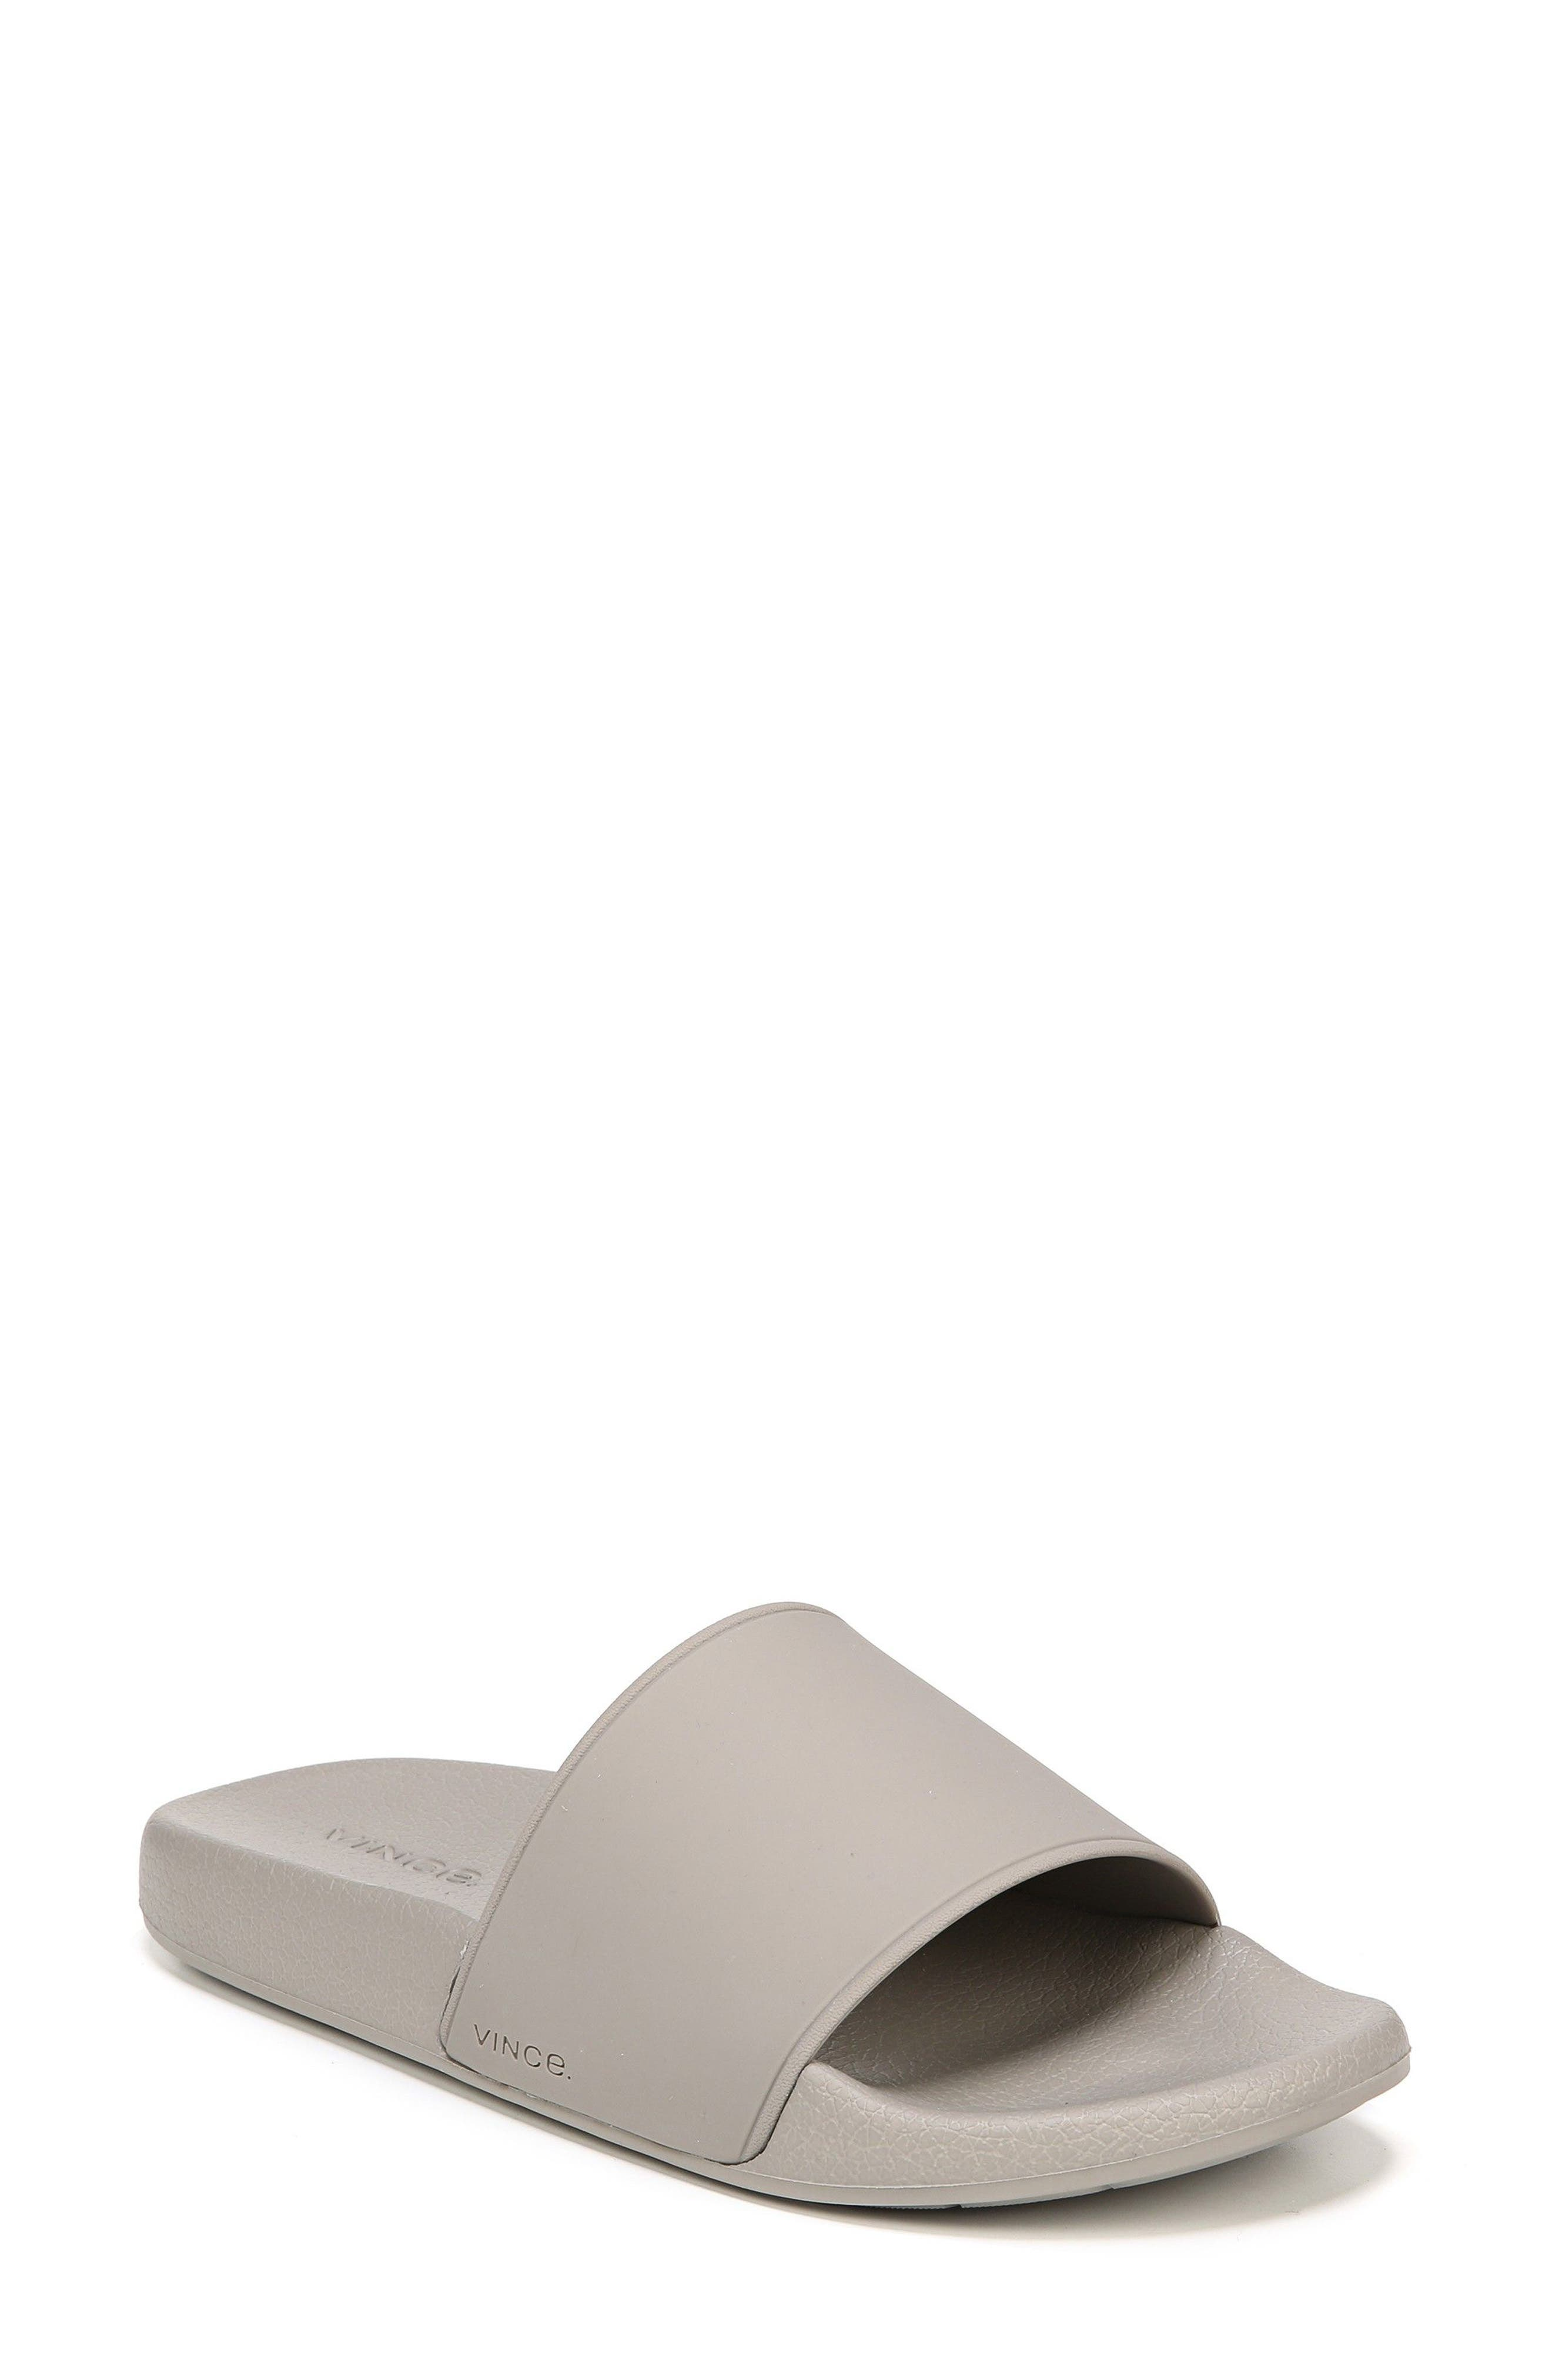 Westcoast Slide Sandal,                         Main,                         color, 026